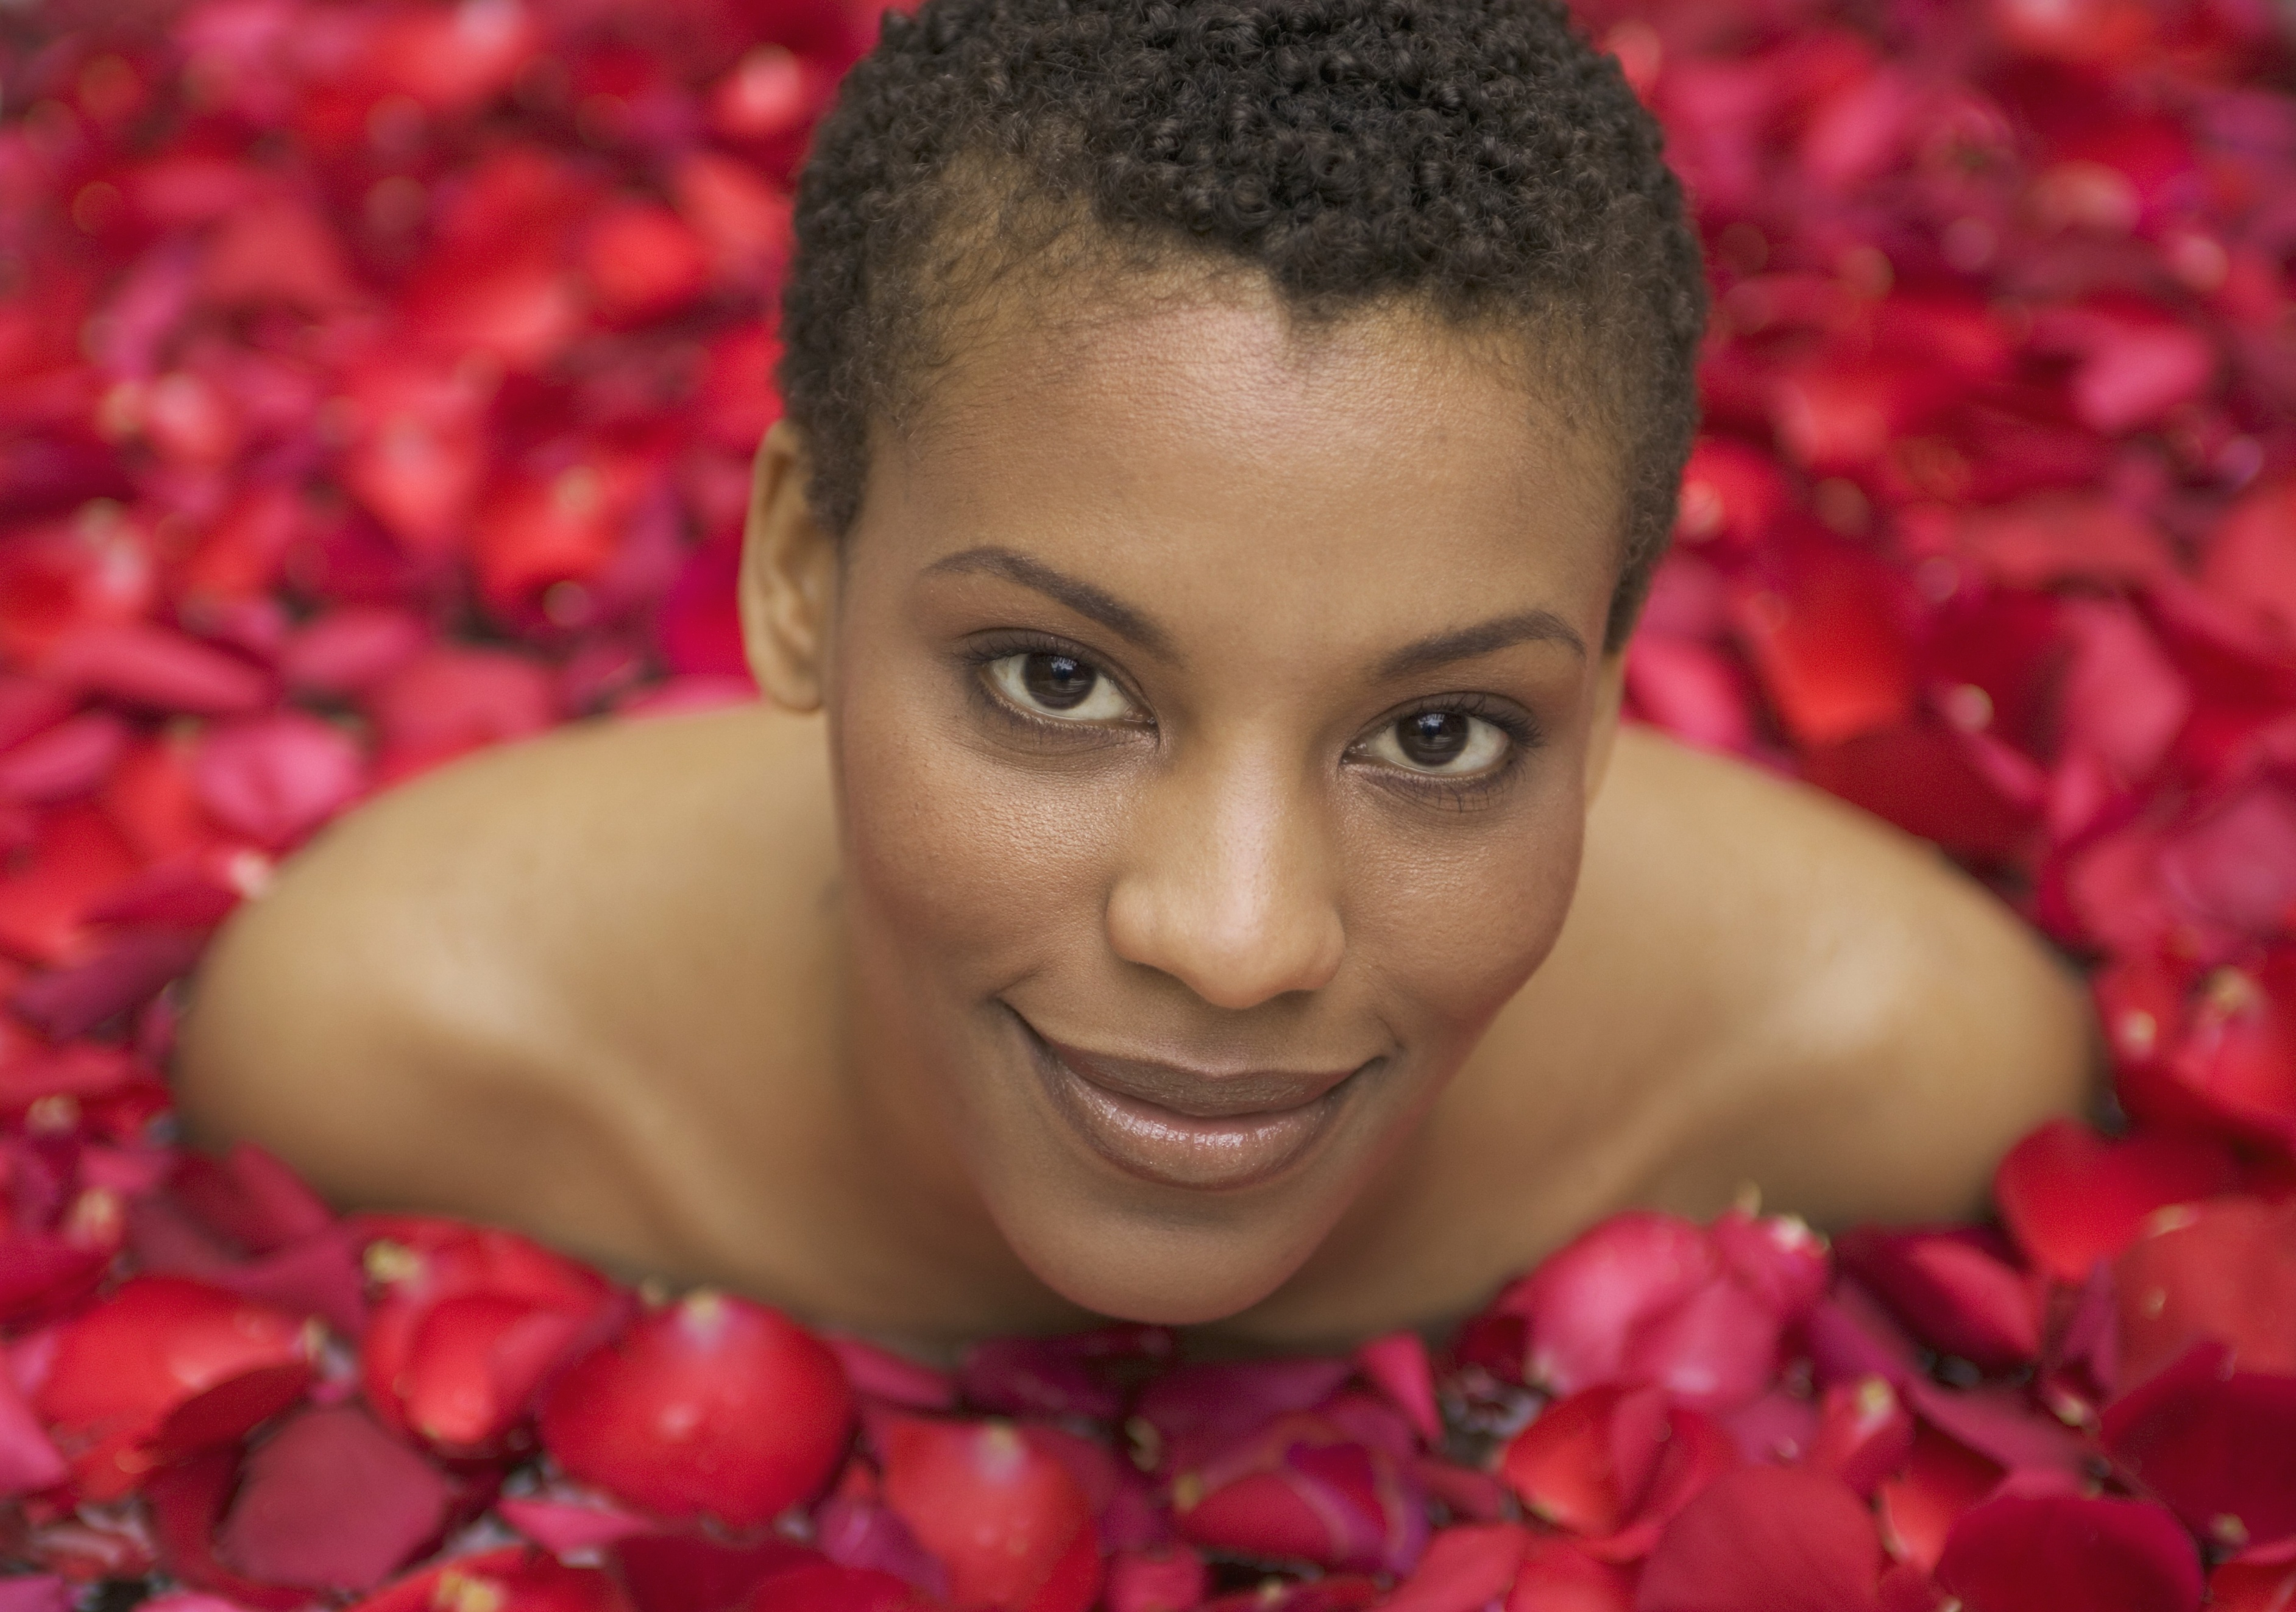 Woman smiling and surrounded by rose petals